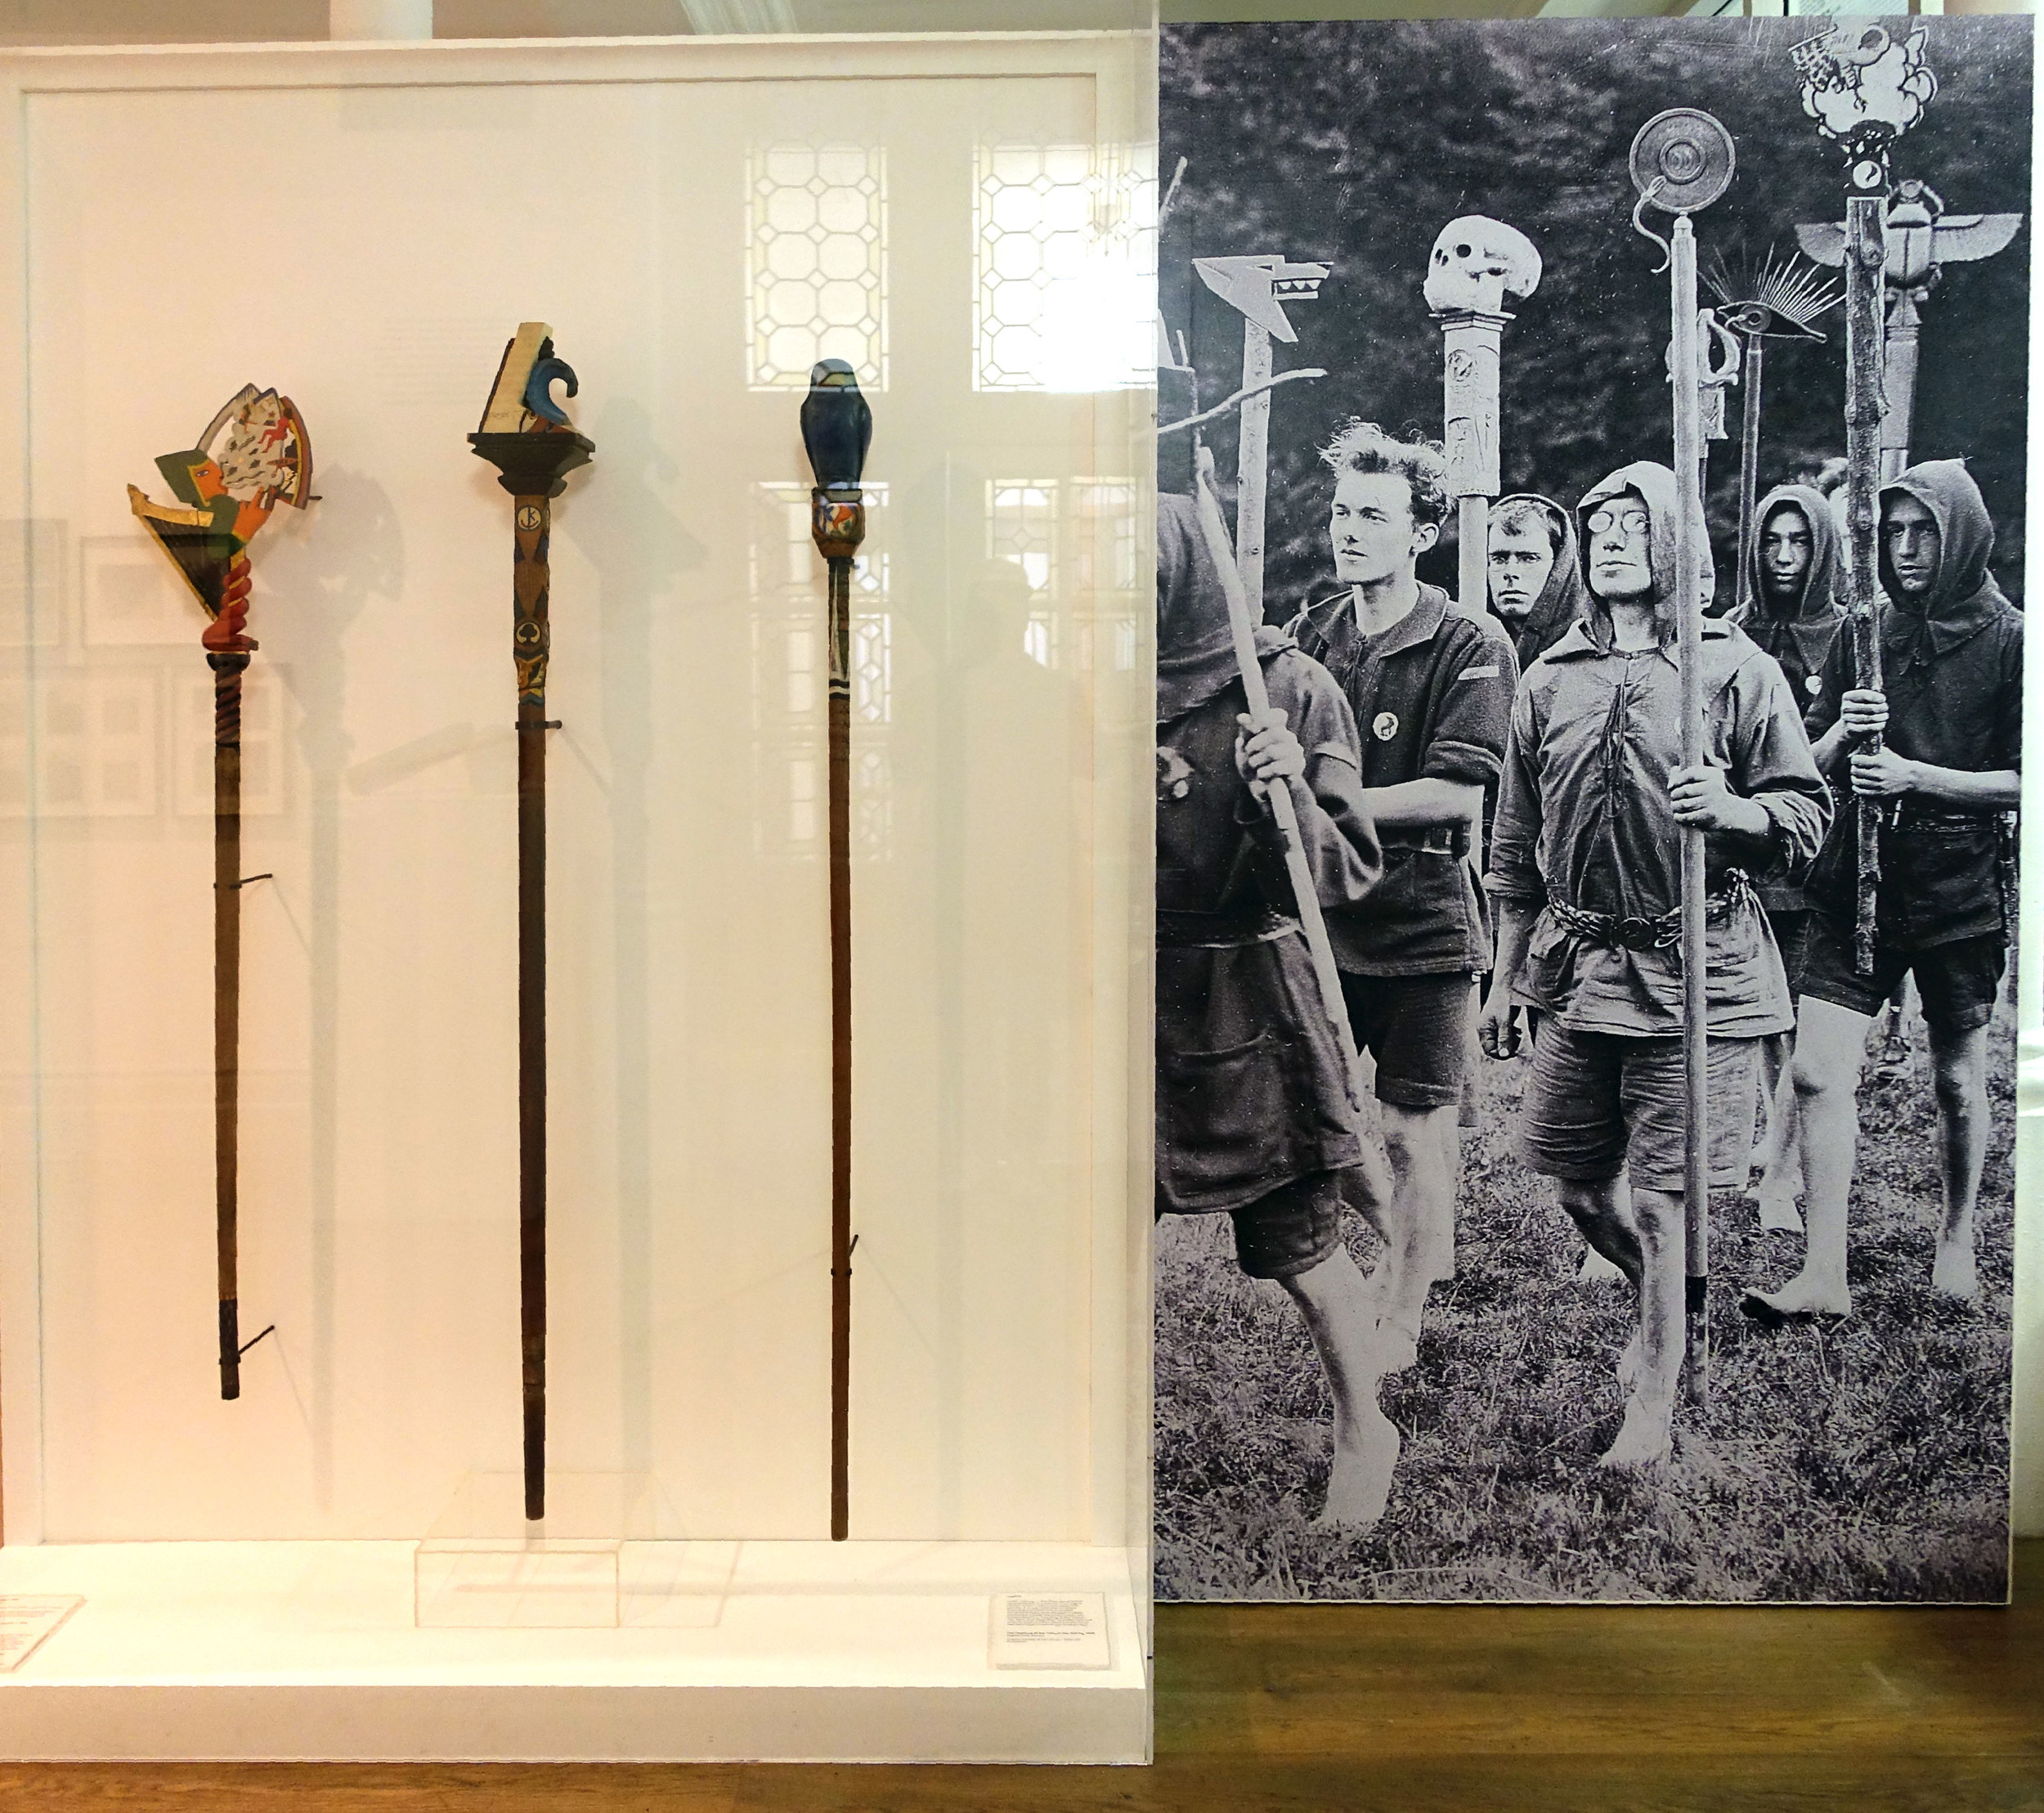 Documentation and the actual staff used in the Kibbo Kift pilgrimages